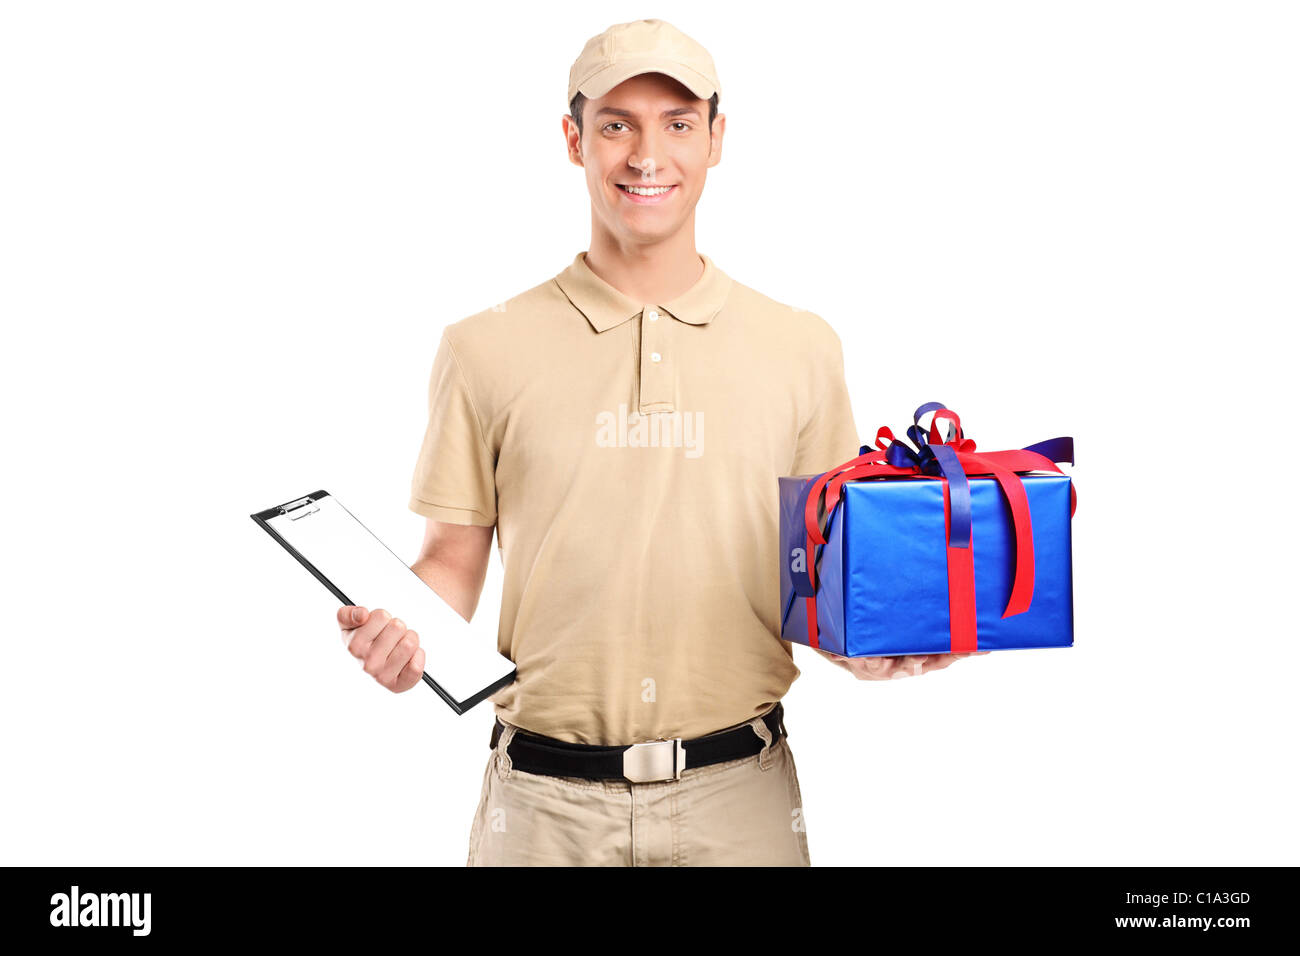 A delivery person delivering a big gift box - Stock Image